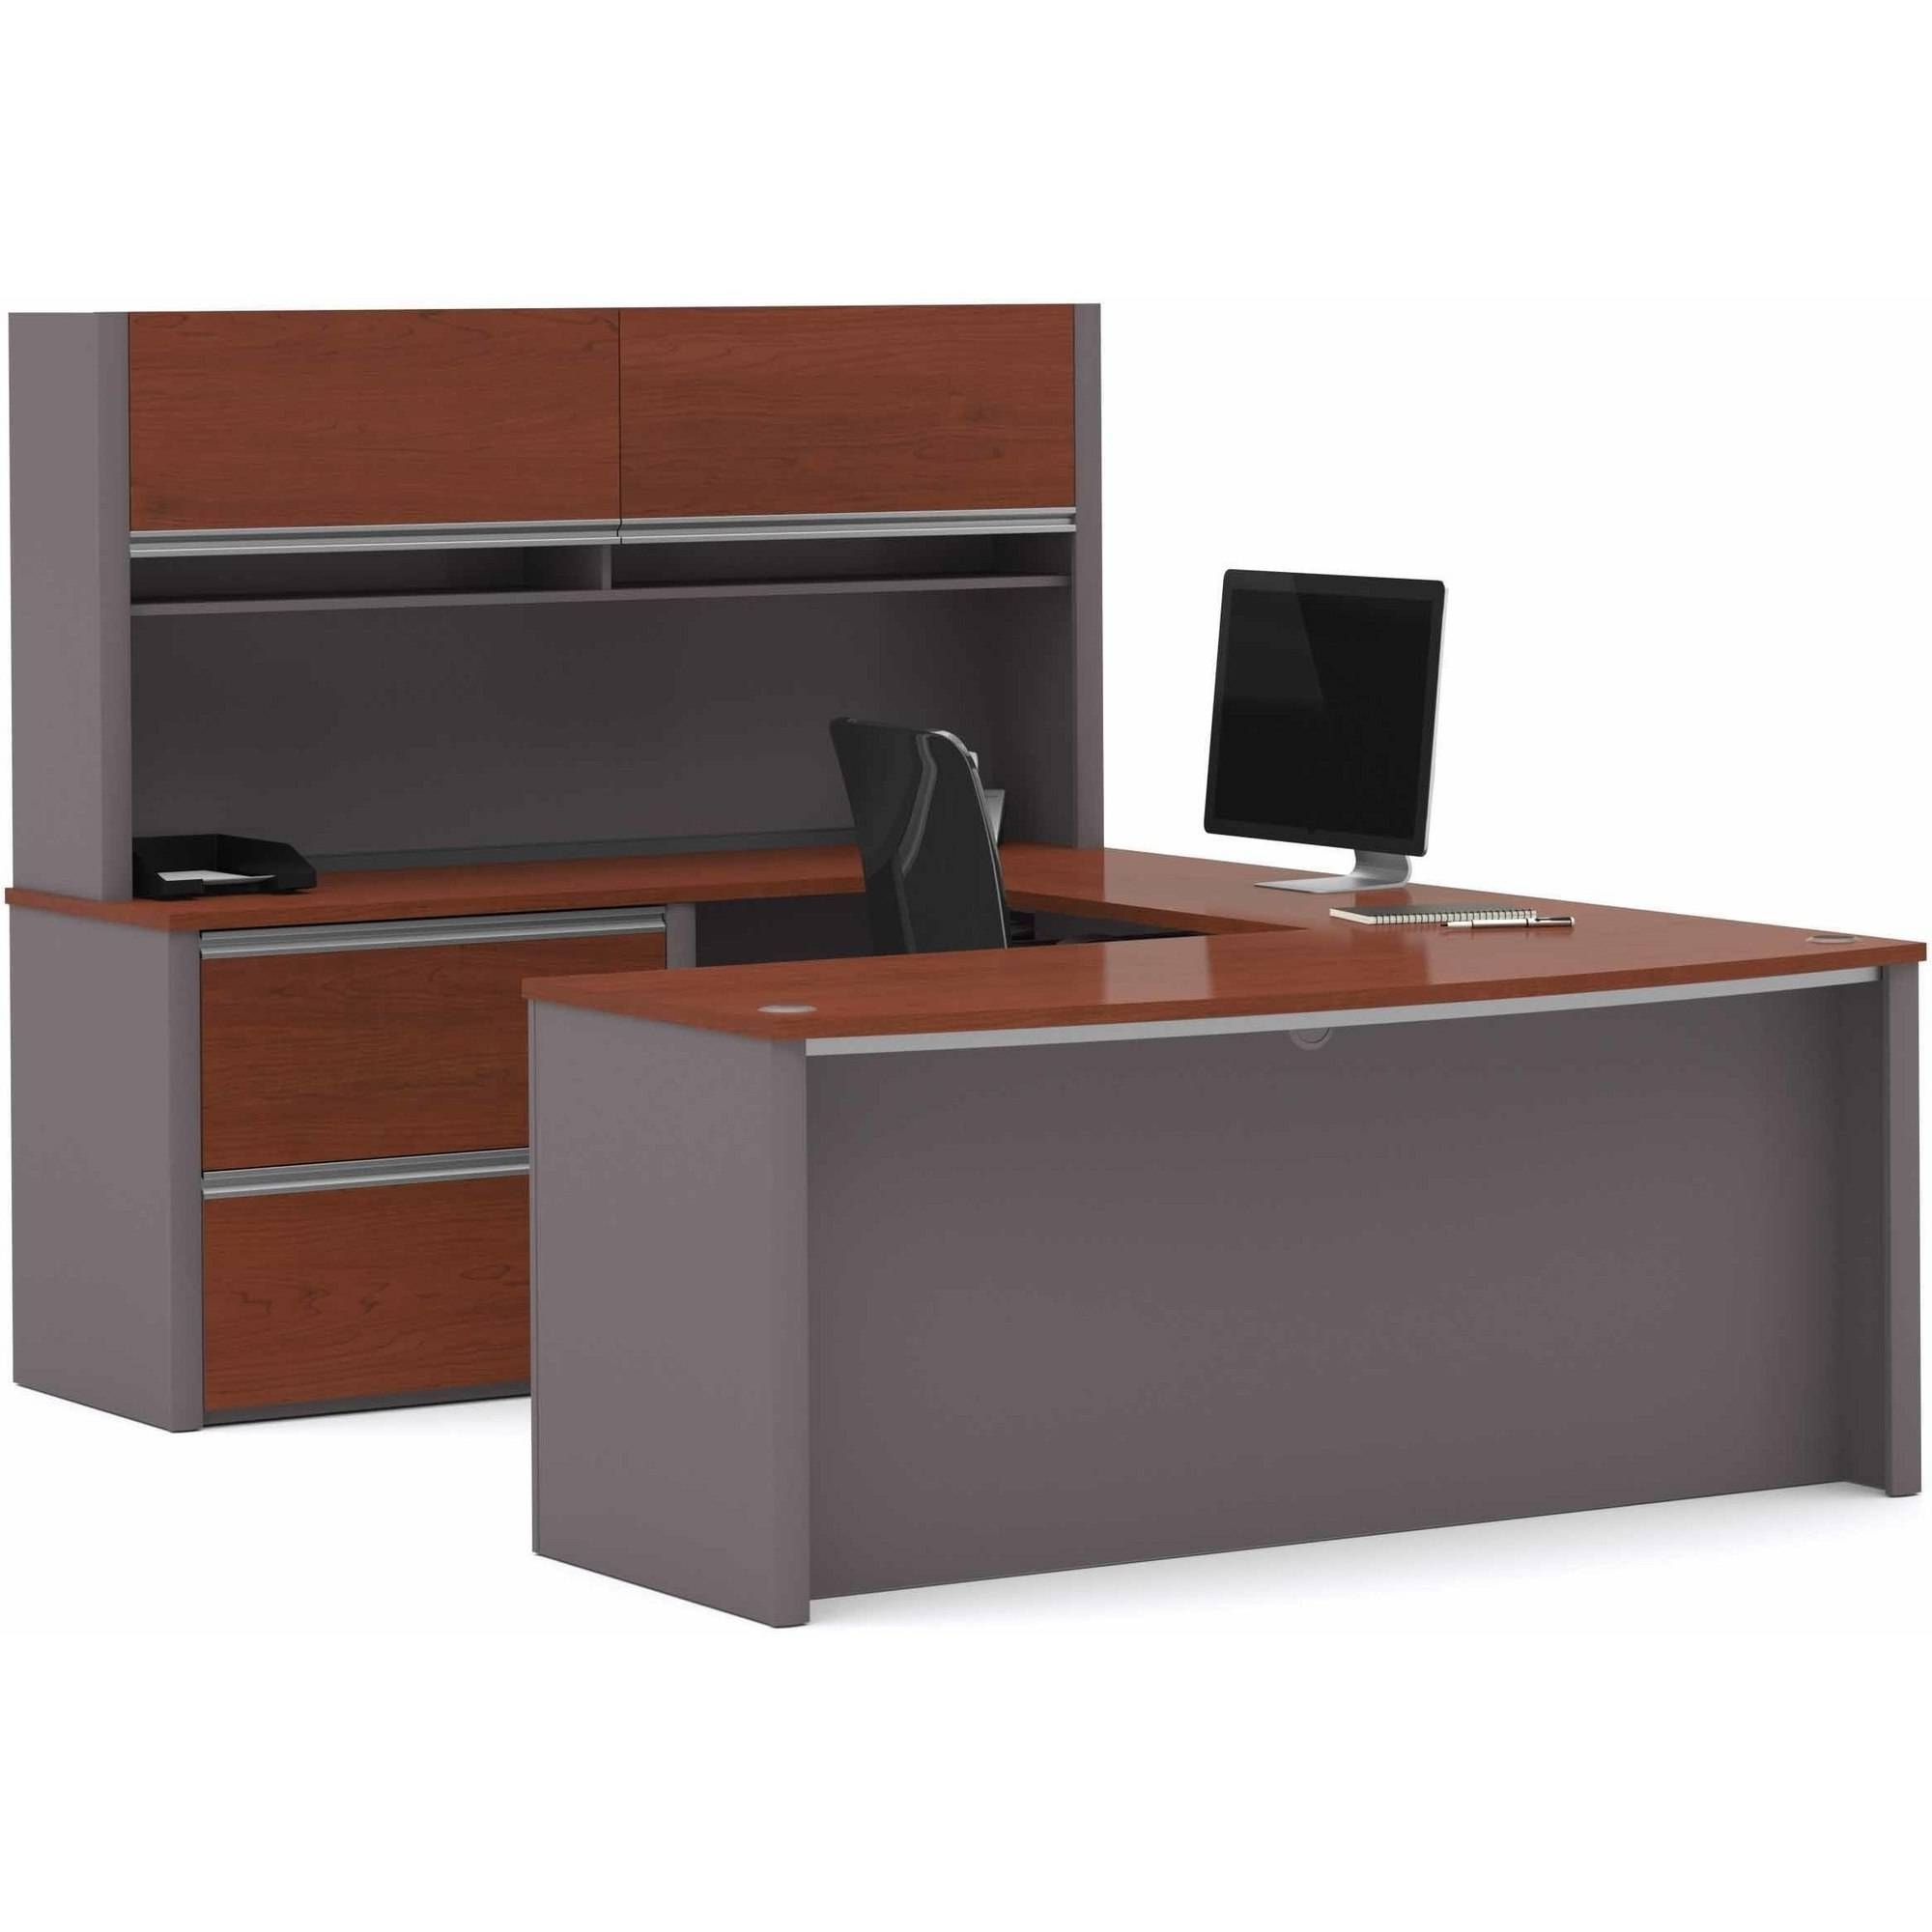 Computer Desks Under $300 Within Latest Desks & Workstations – Walmart (View 13 of 20)